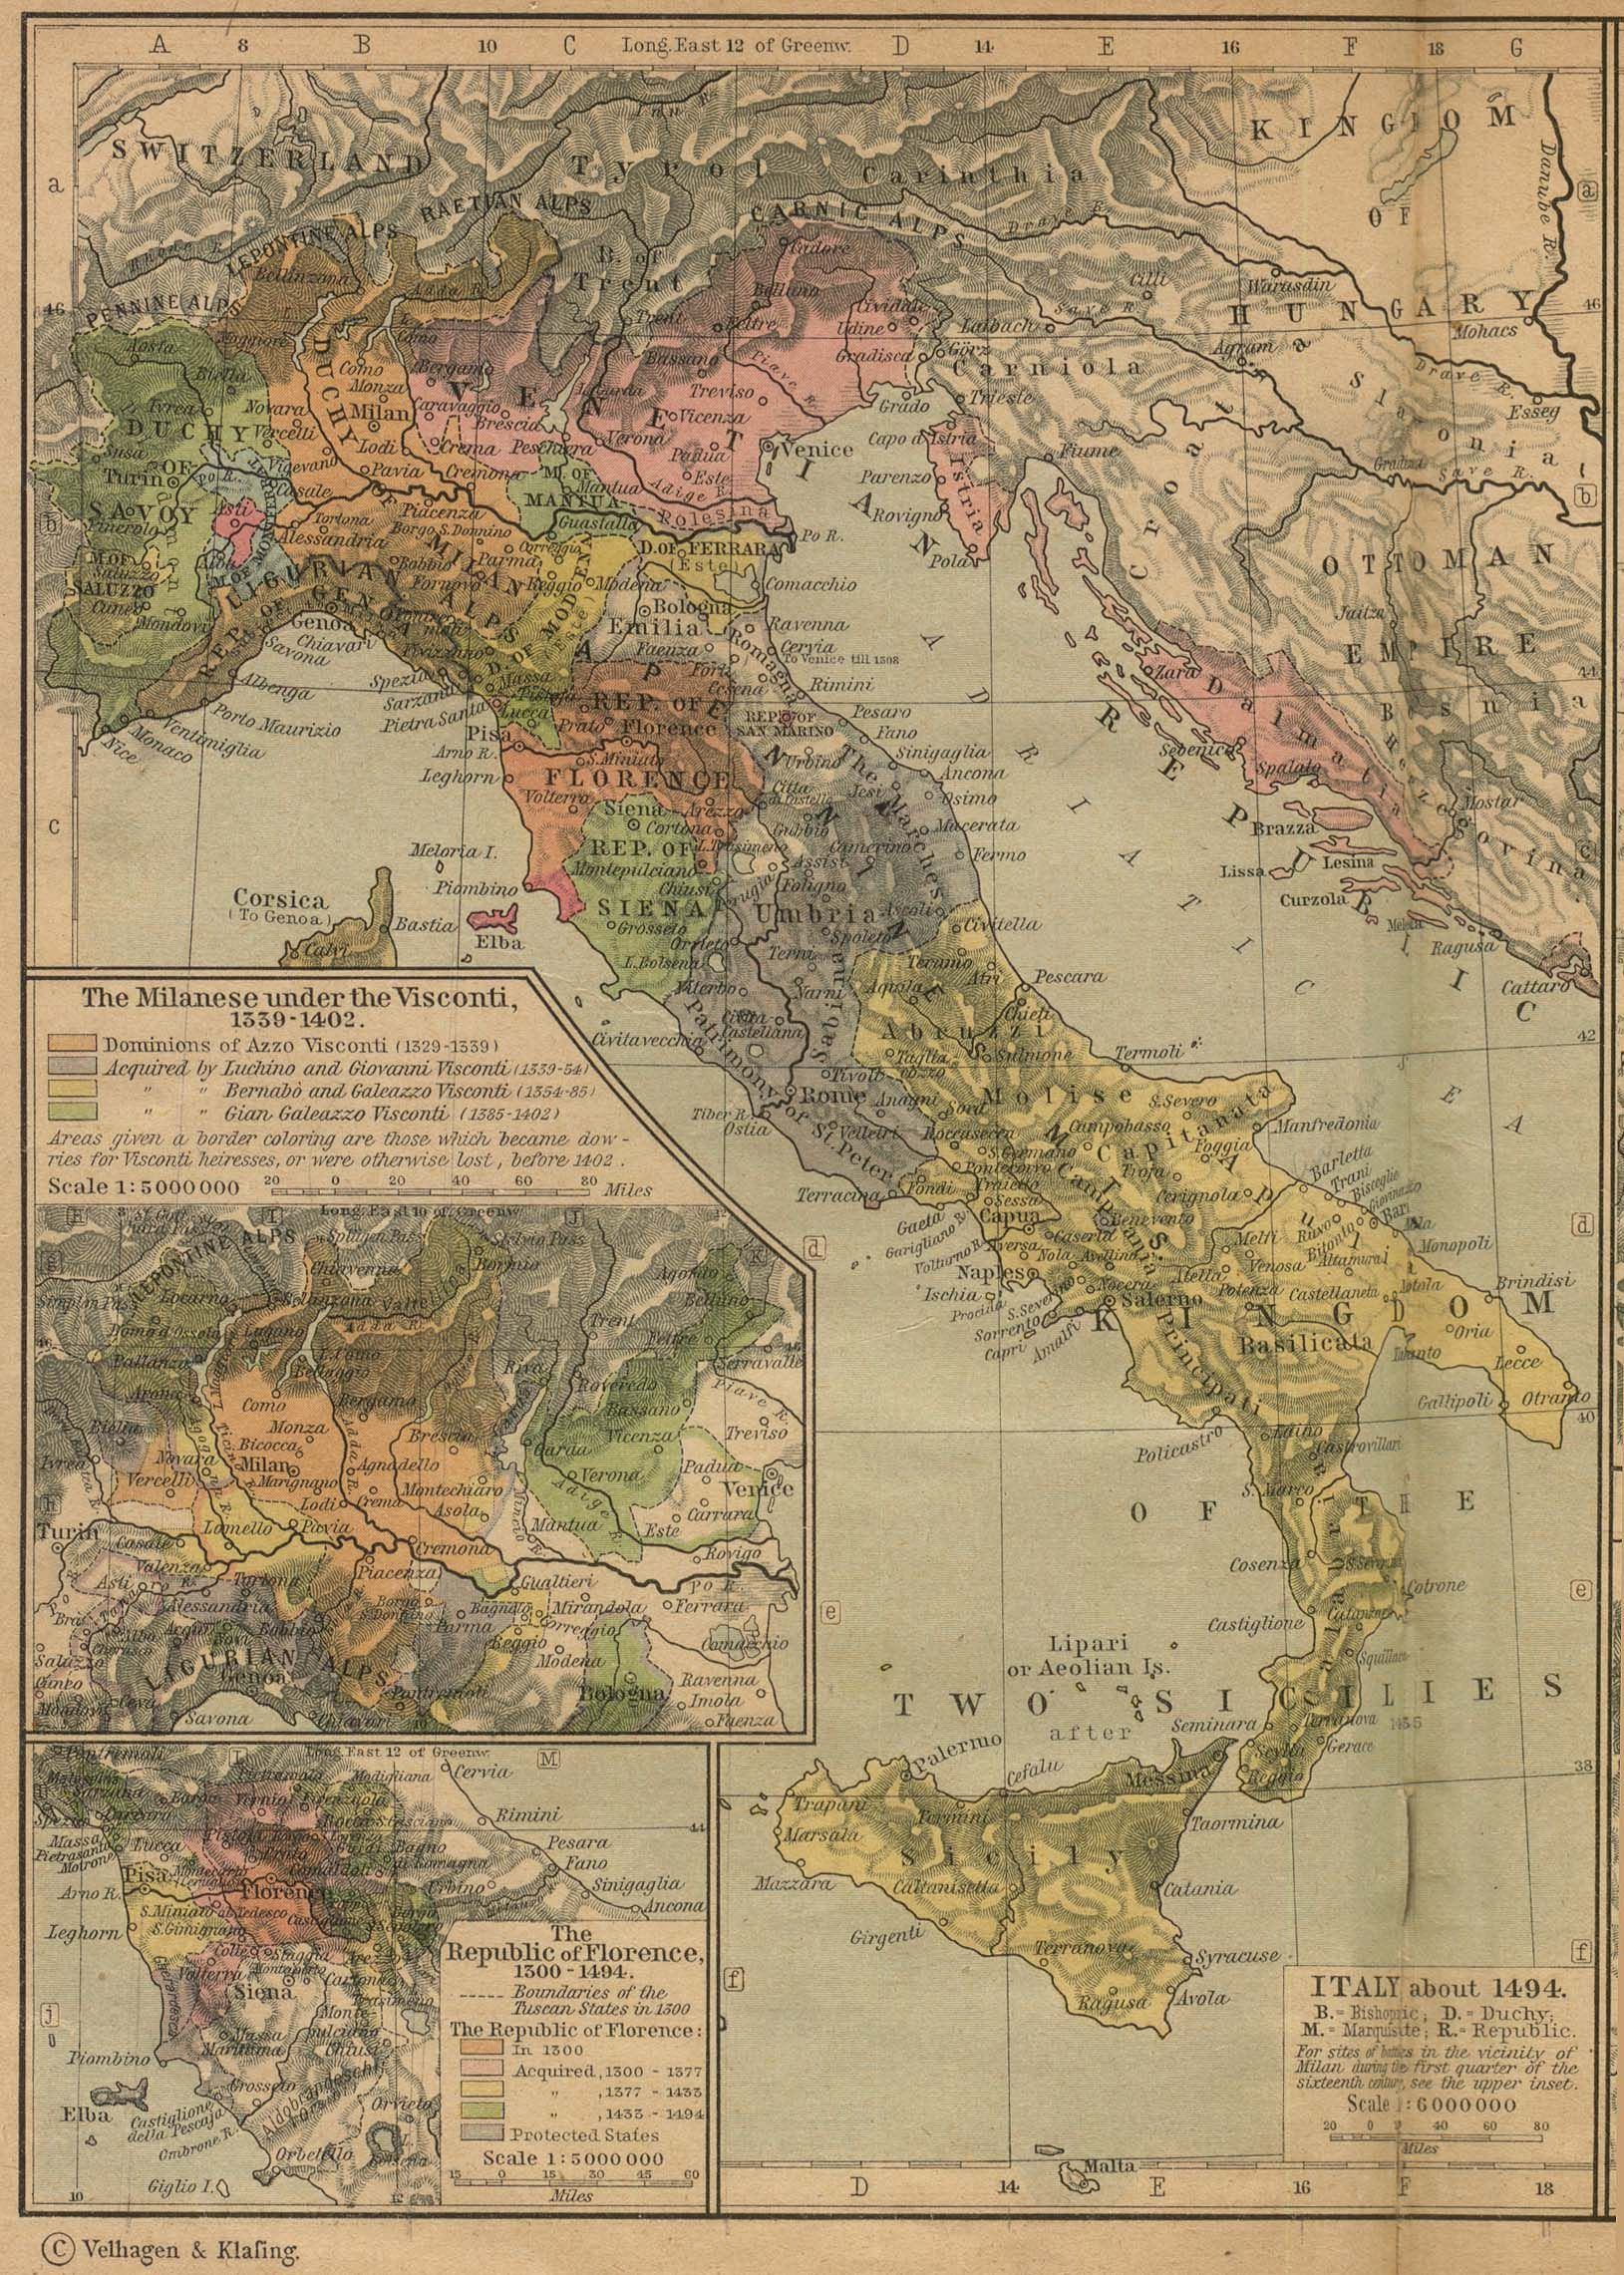 Historical Maps of Europe Italy about 1494 774K Insets The